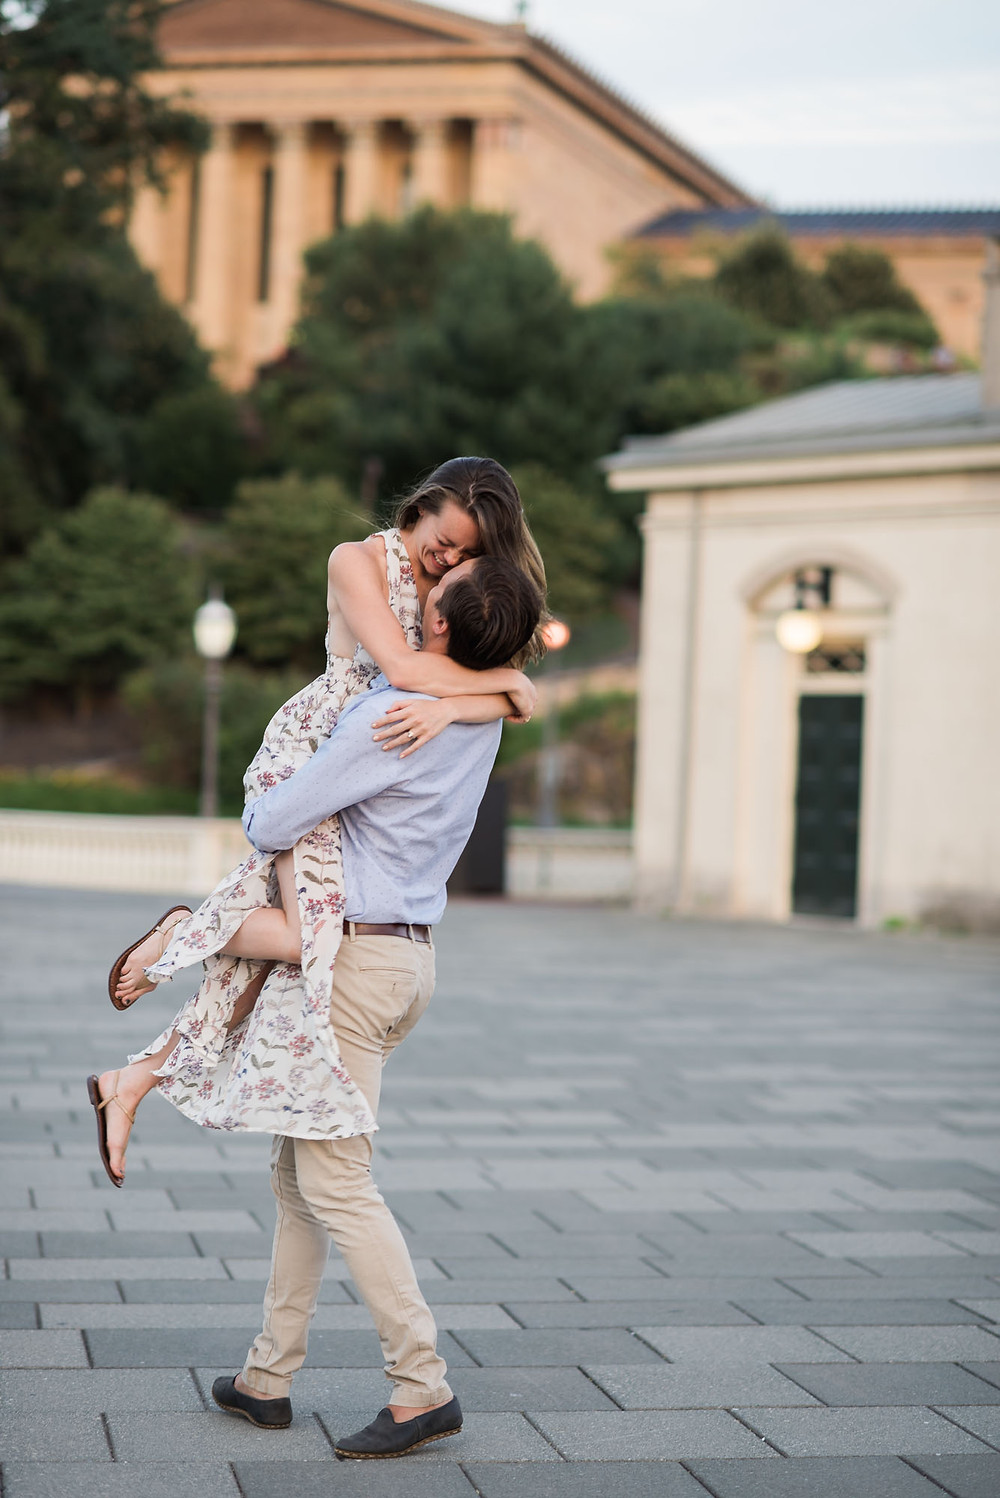 Fun Philadelphia Engagement Photos in the Summer